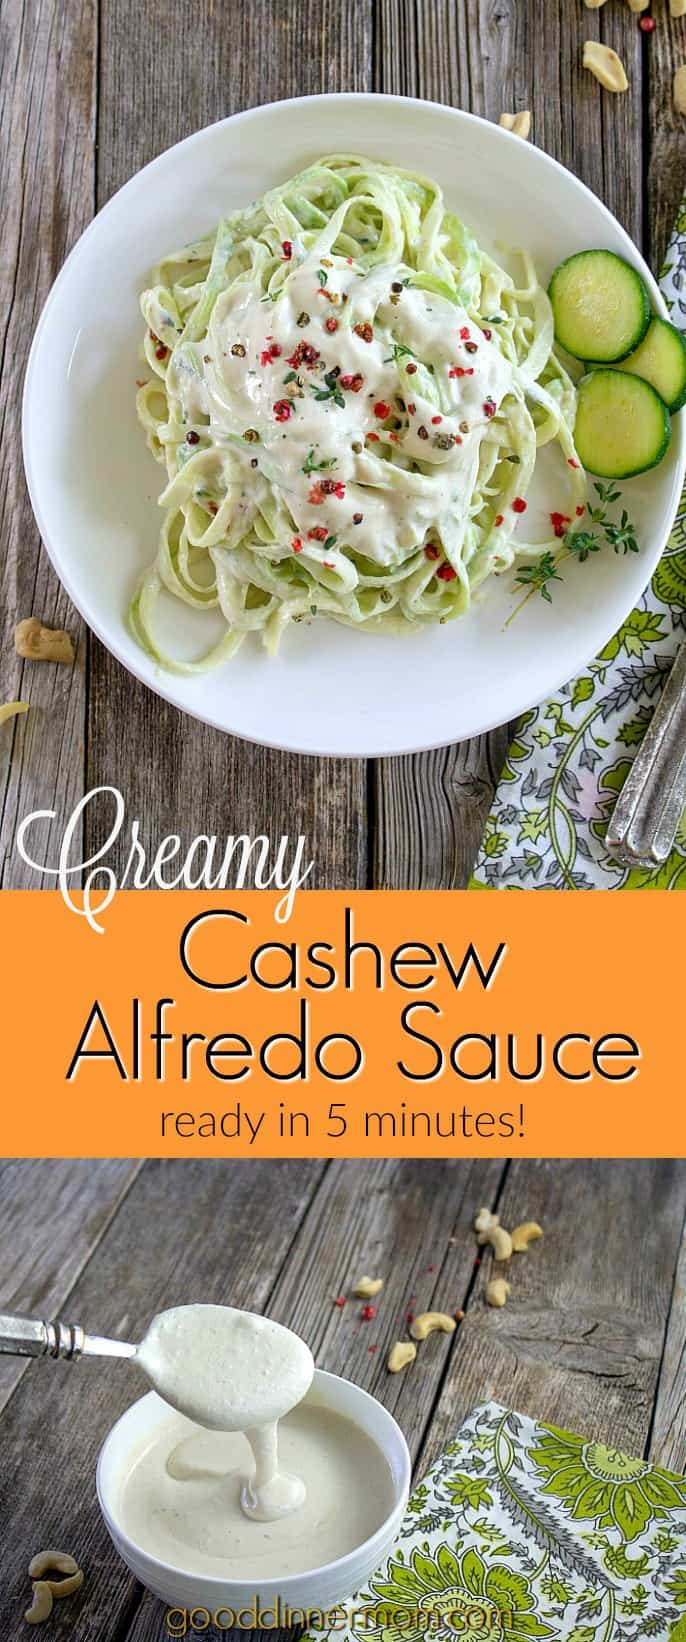 A creamy, dreamy, low calorie and dairy-free Alfredo sauce that's ready in 5 minutes. Perfect over pasta or vegetables. #dairy-free #vegan #paleo #keto